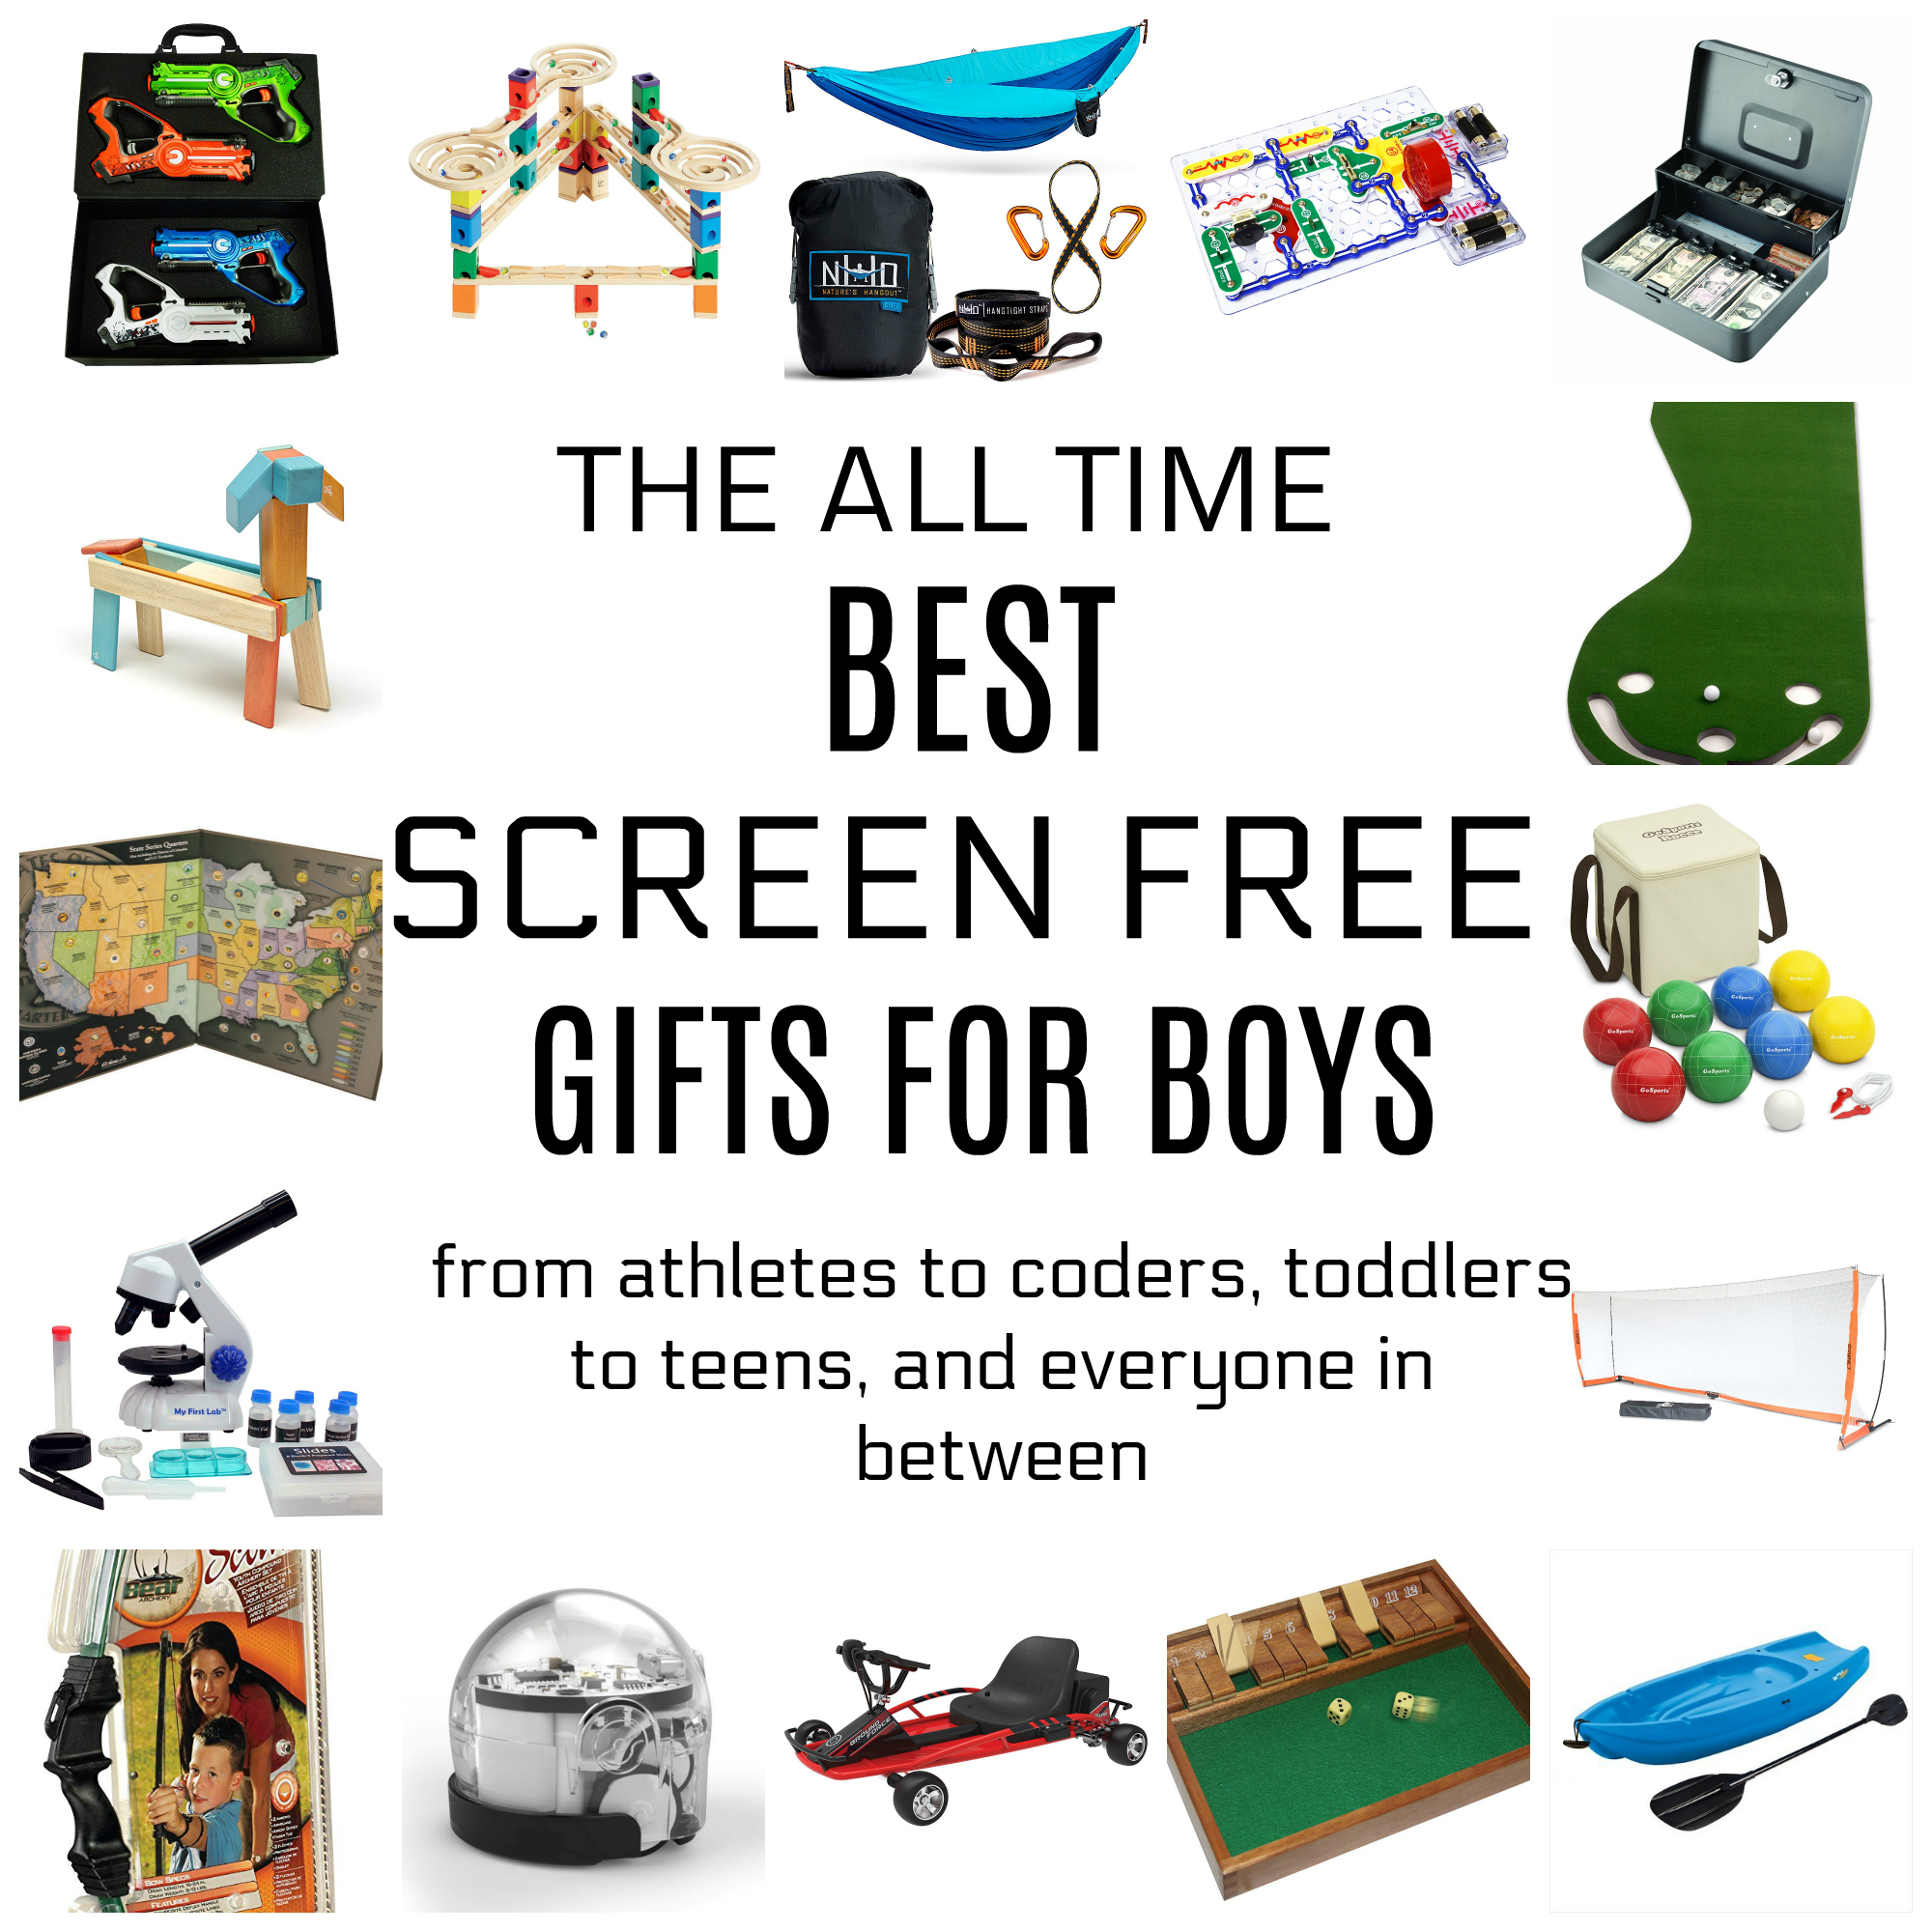 The All Time Best Best Screen Free Gifts for Boys! | Brooke Romney ...